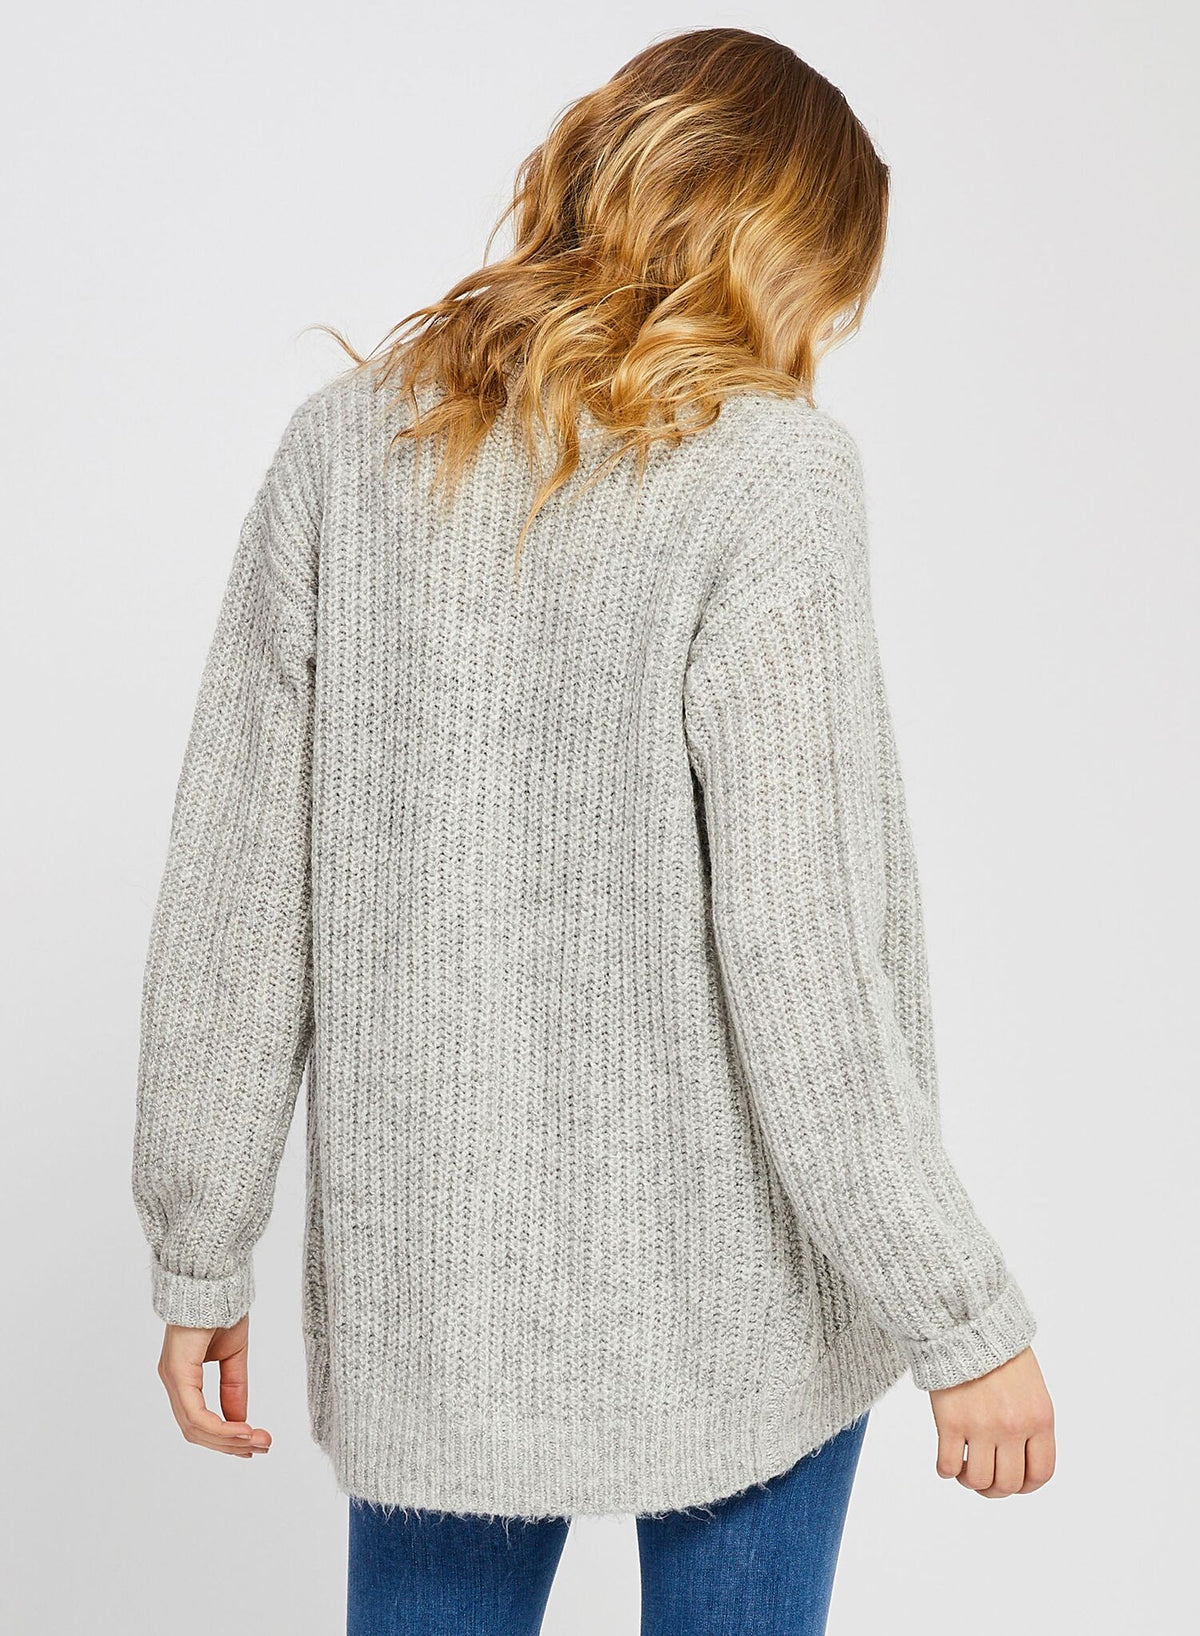 GENTLE FAWN Kinross Cardigan